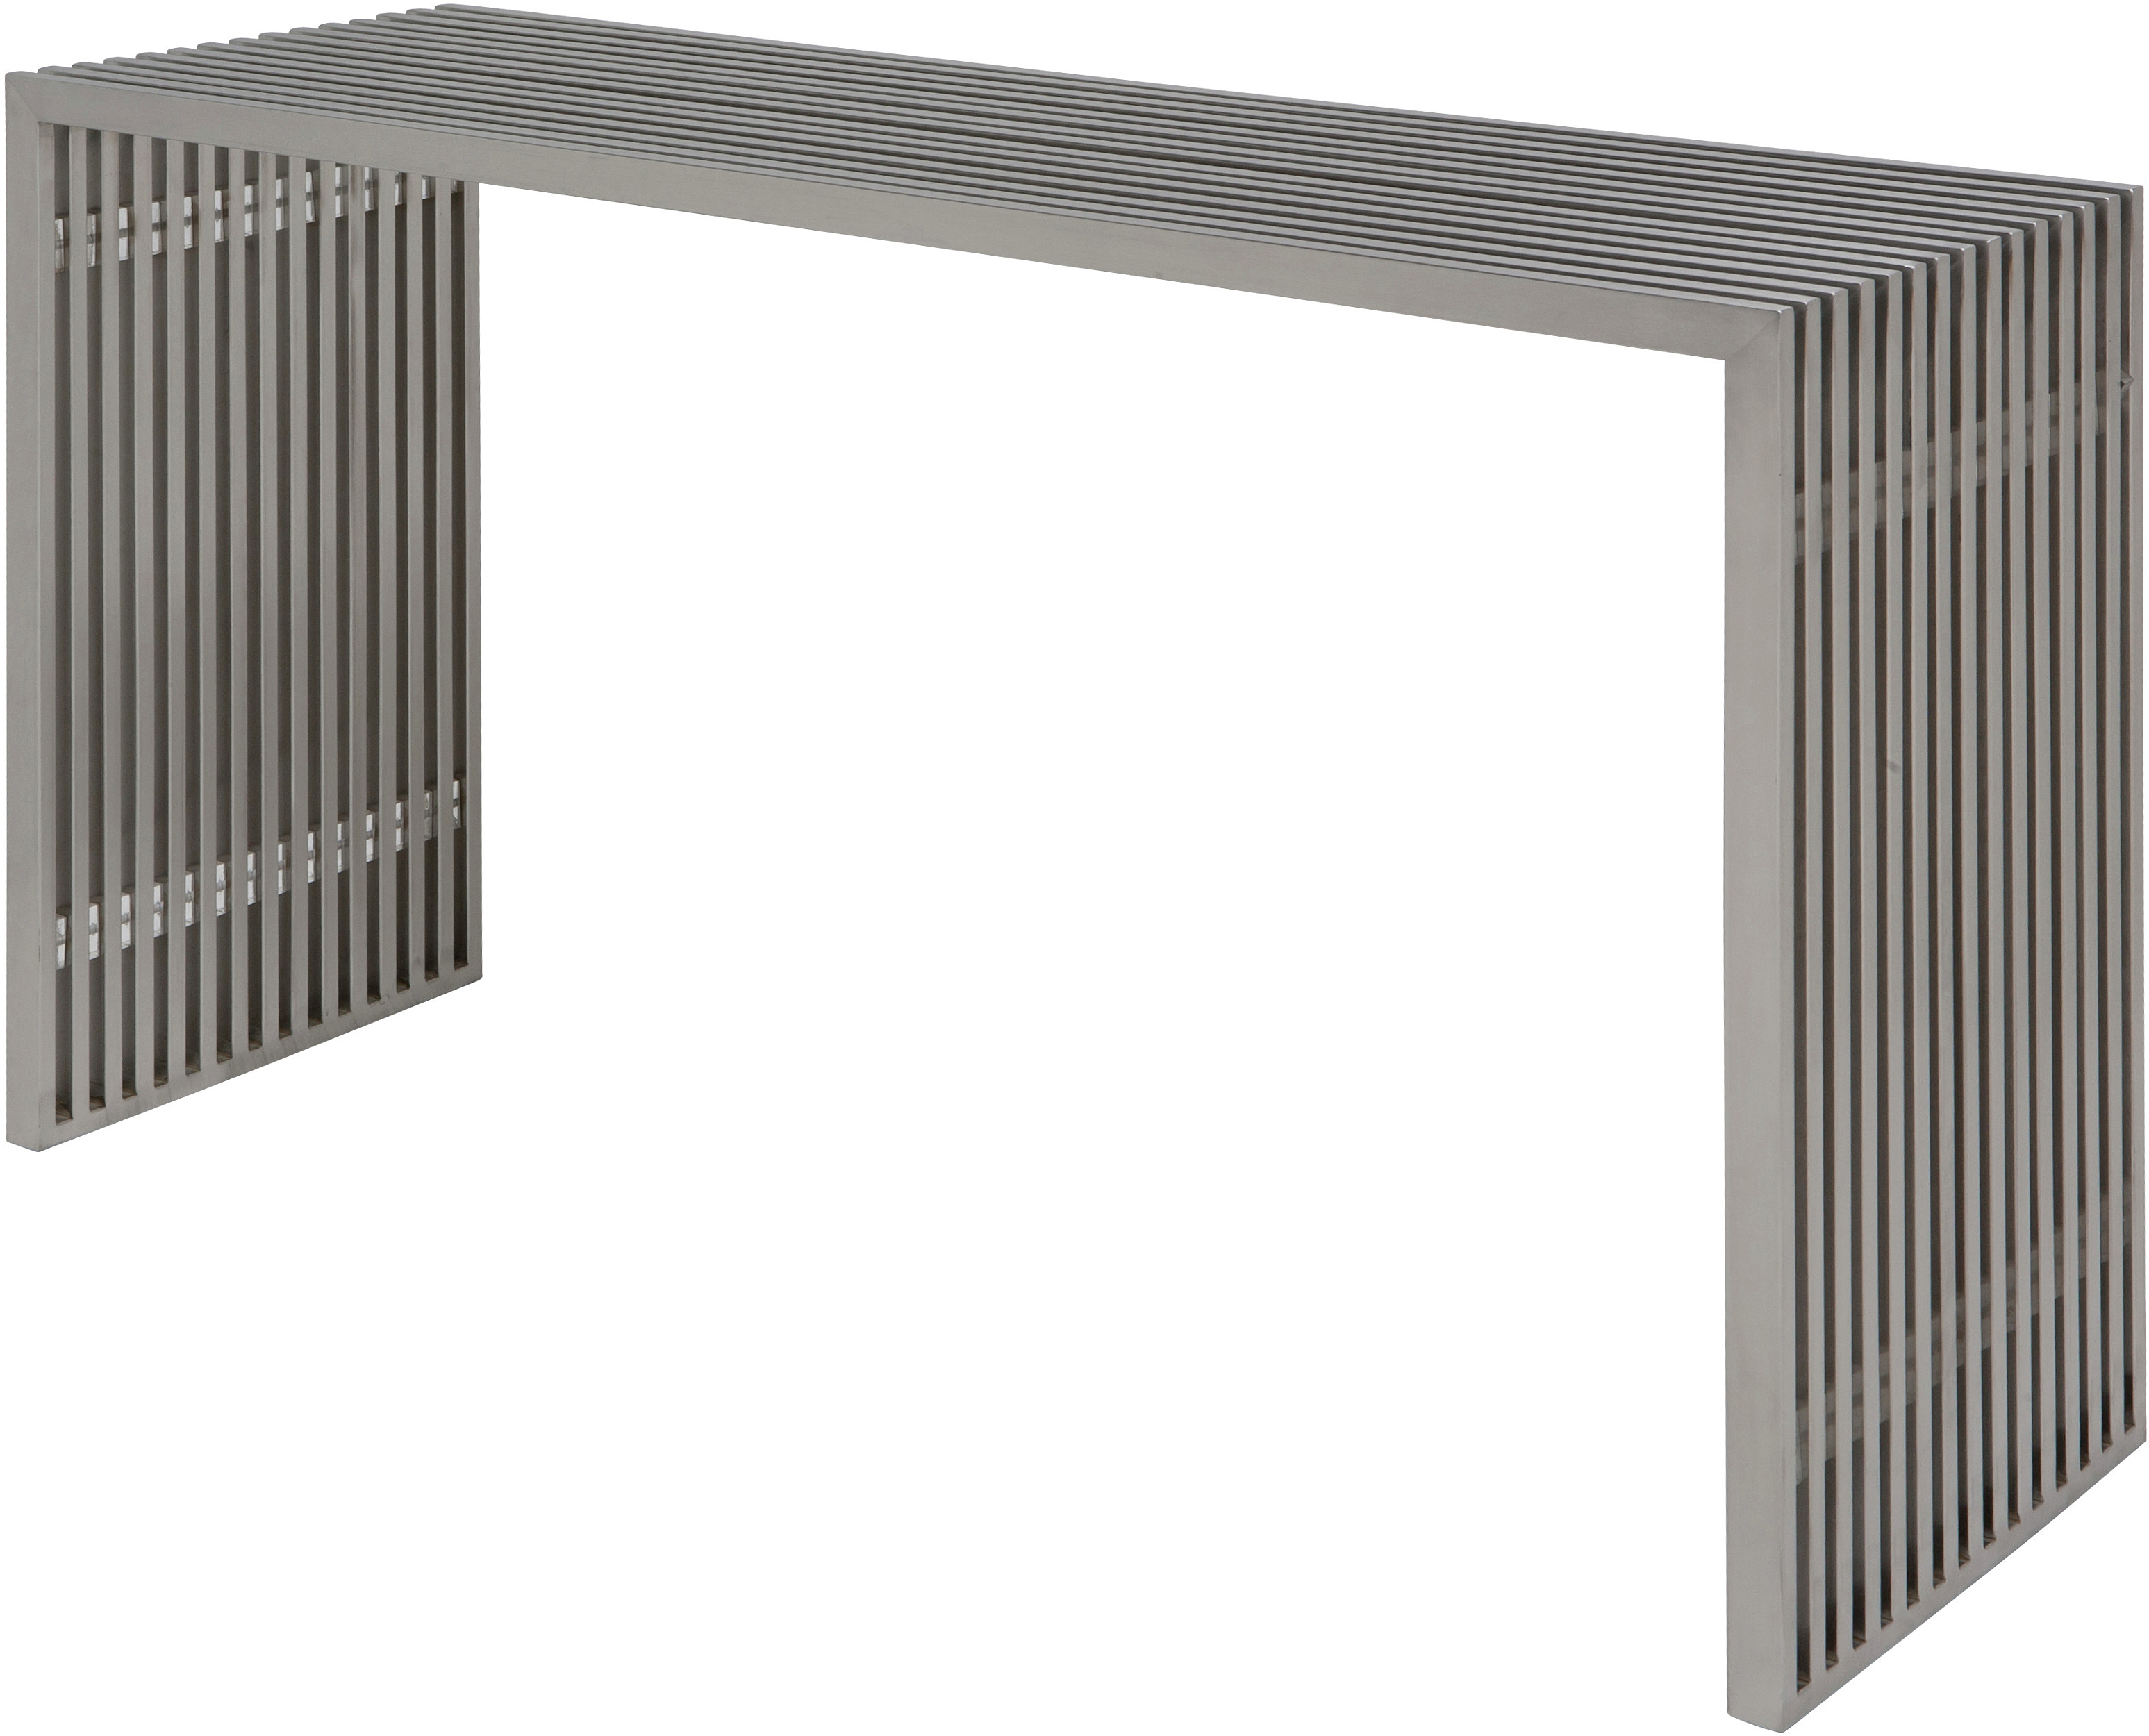 the amici console in stainless steel